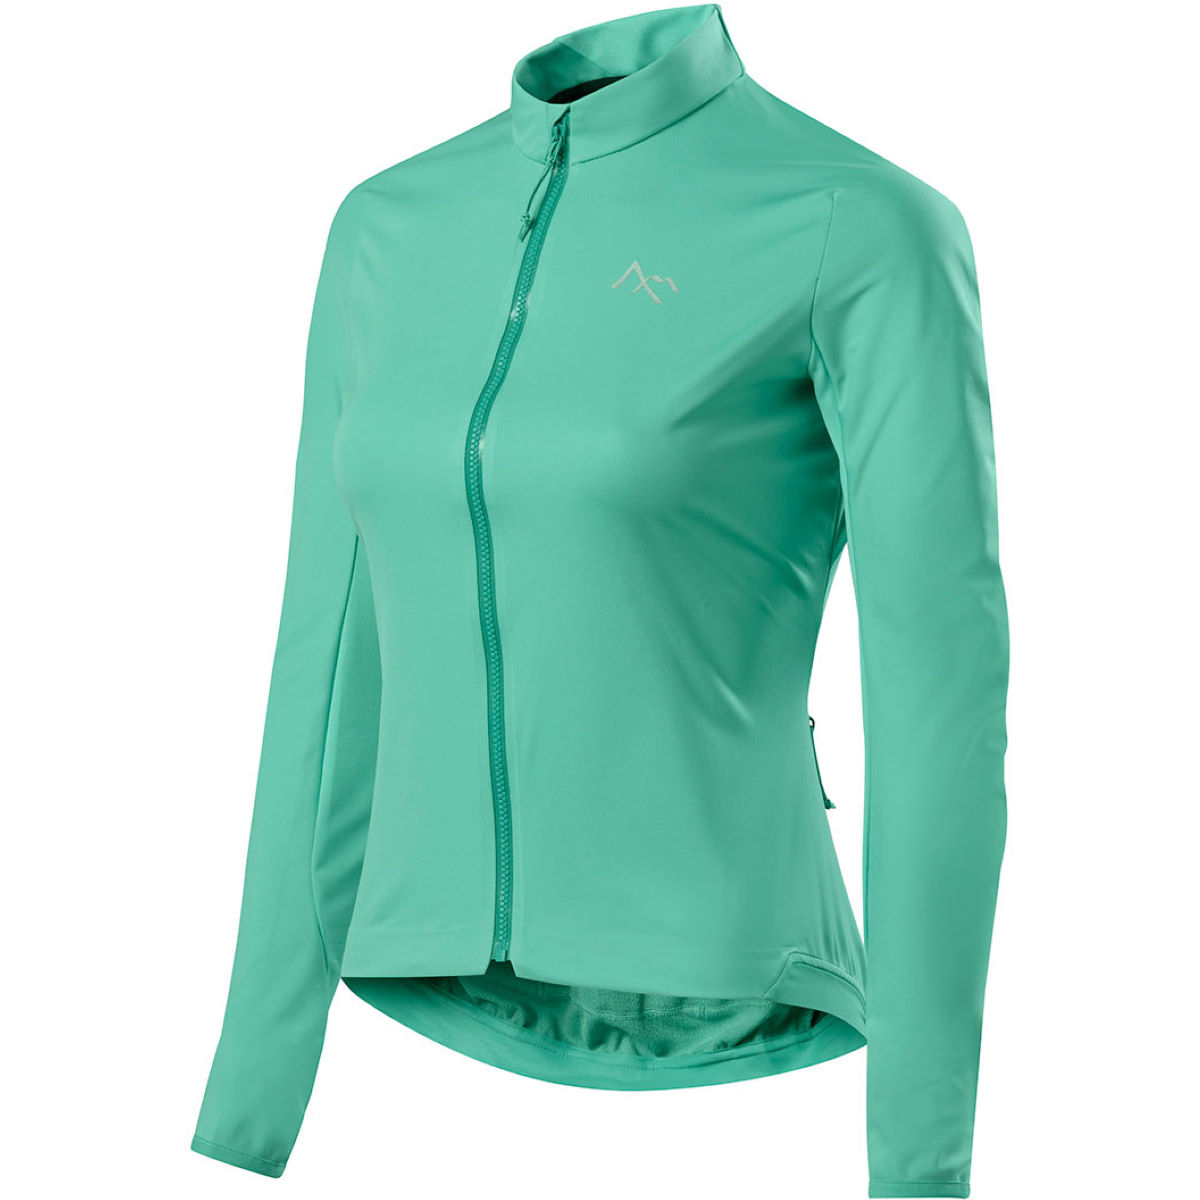 Maillot Femme 7Mesh Synergy (manches longues) - L Emerald Maillots